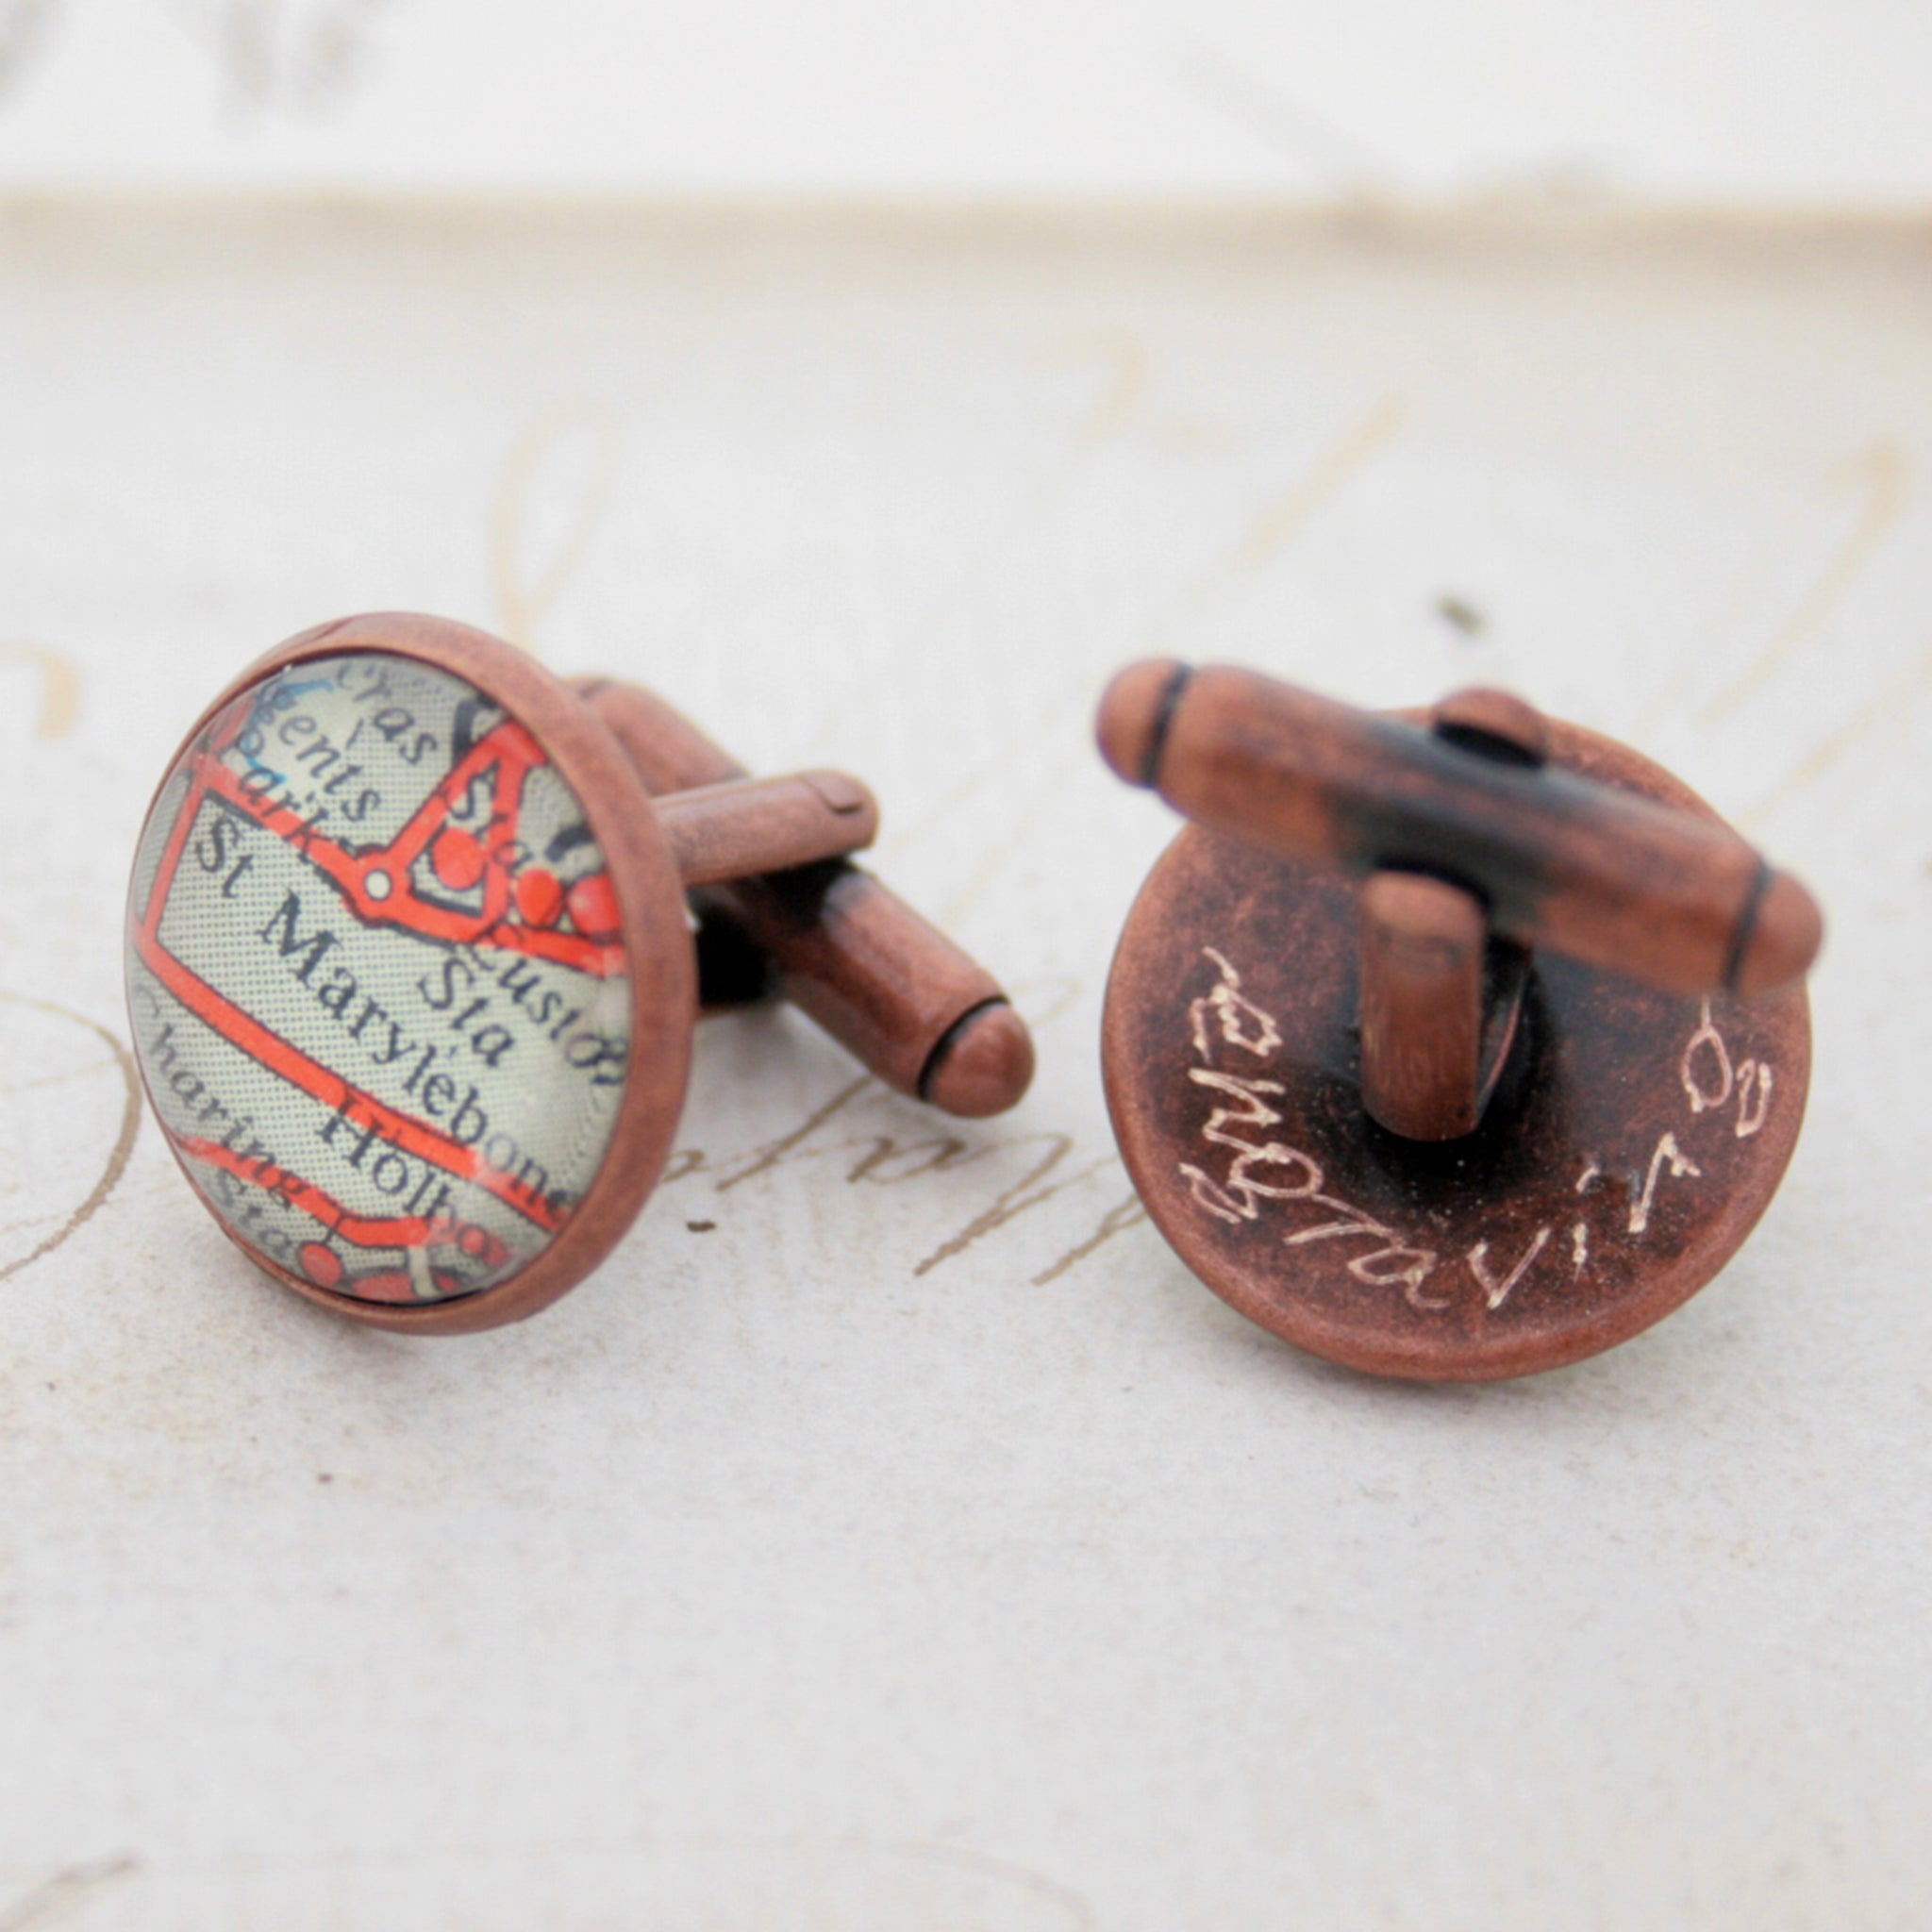 engraved cufflinks personalised with map locations in antique copper finish